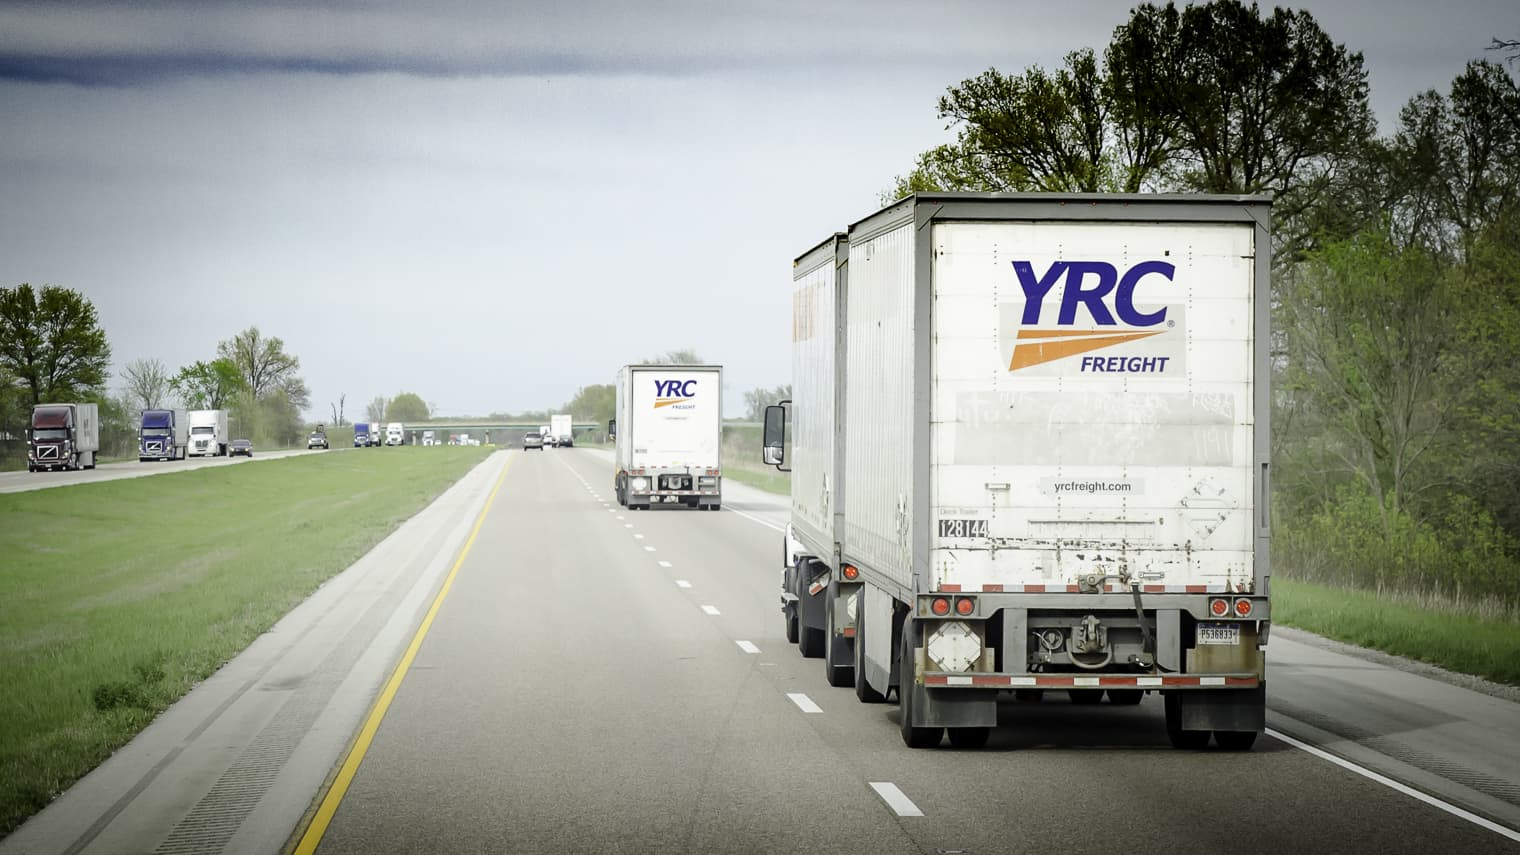 Photo of YRCW has a good operating quarter and year, and solid progress on the balance sheet